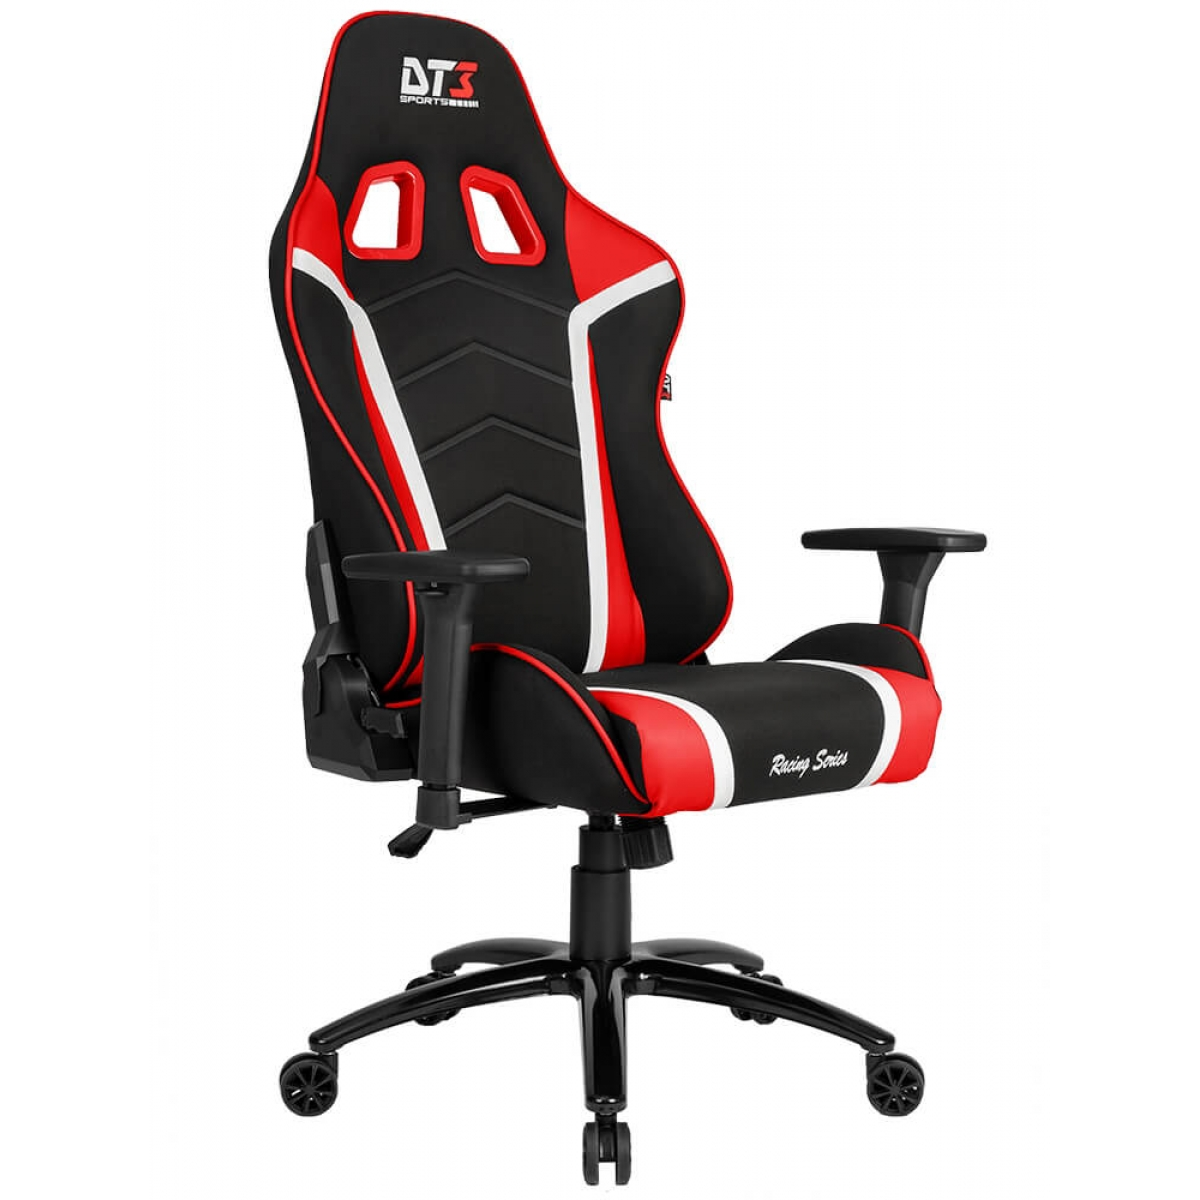 Cadeira Gamer DT3Sports Modena Fabric, Red